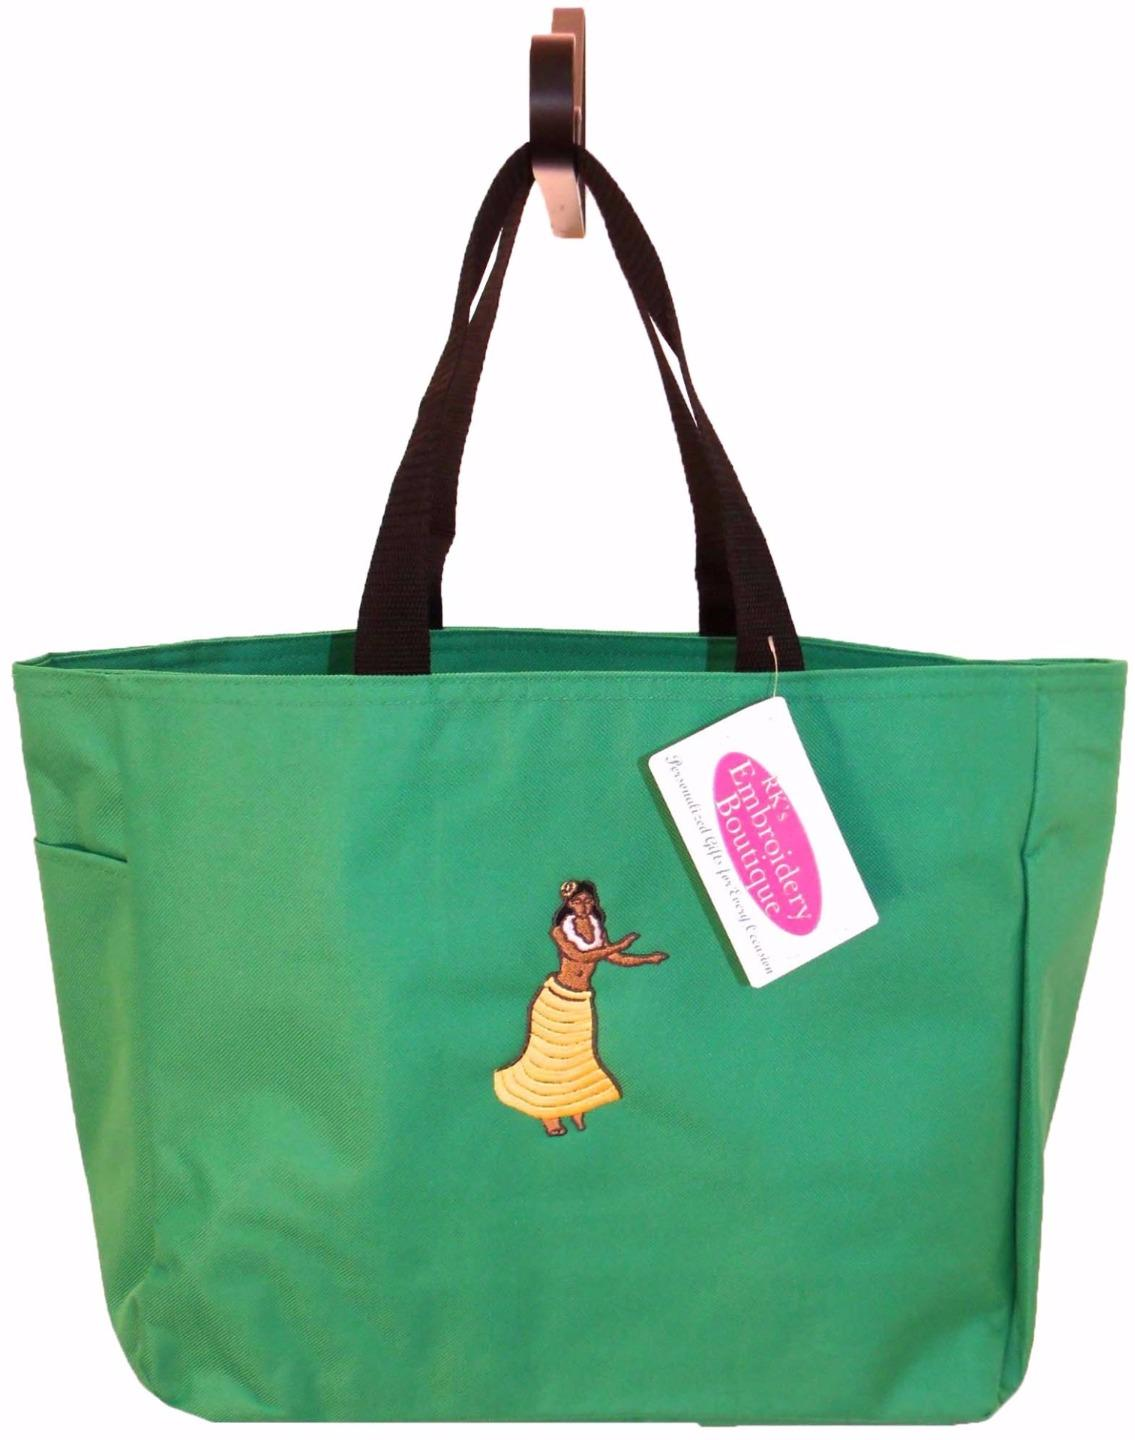 Hula dancer tropical vacation beach bag honeymoon